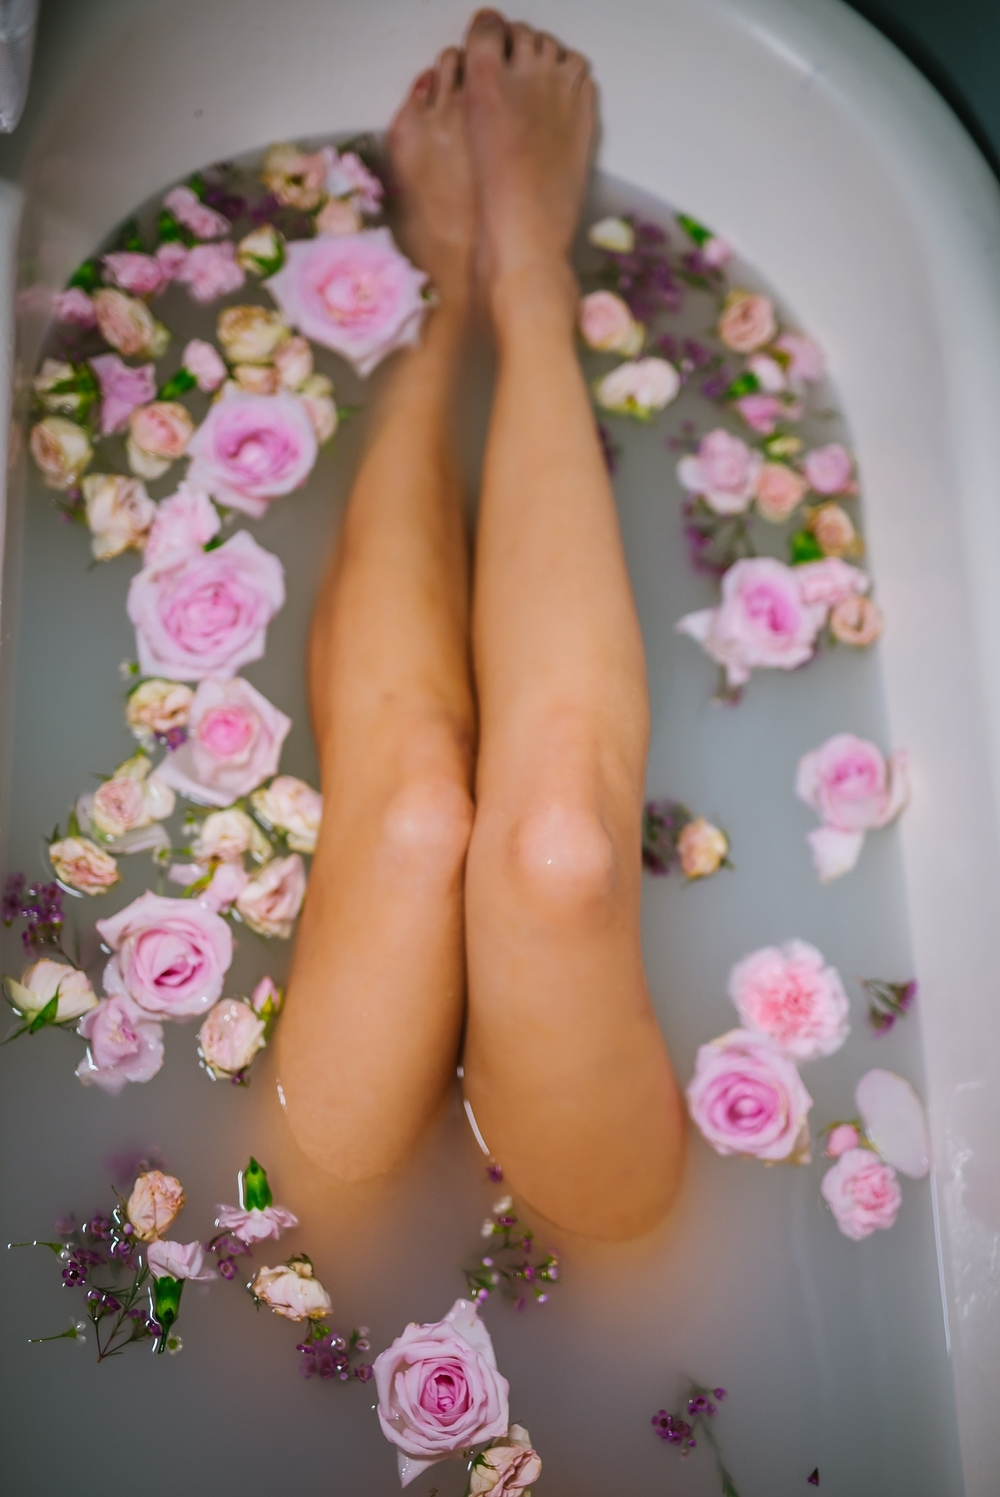 creative-hipster-boudoir-photos-tampa-studio-flowers-bathtub_0011.jpg